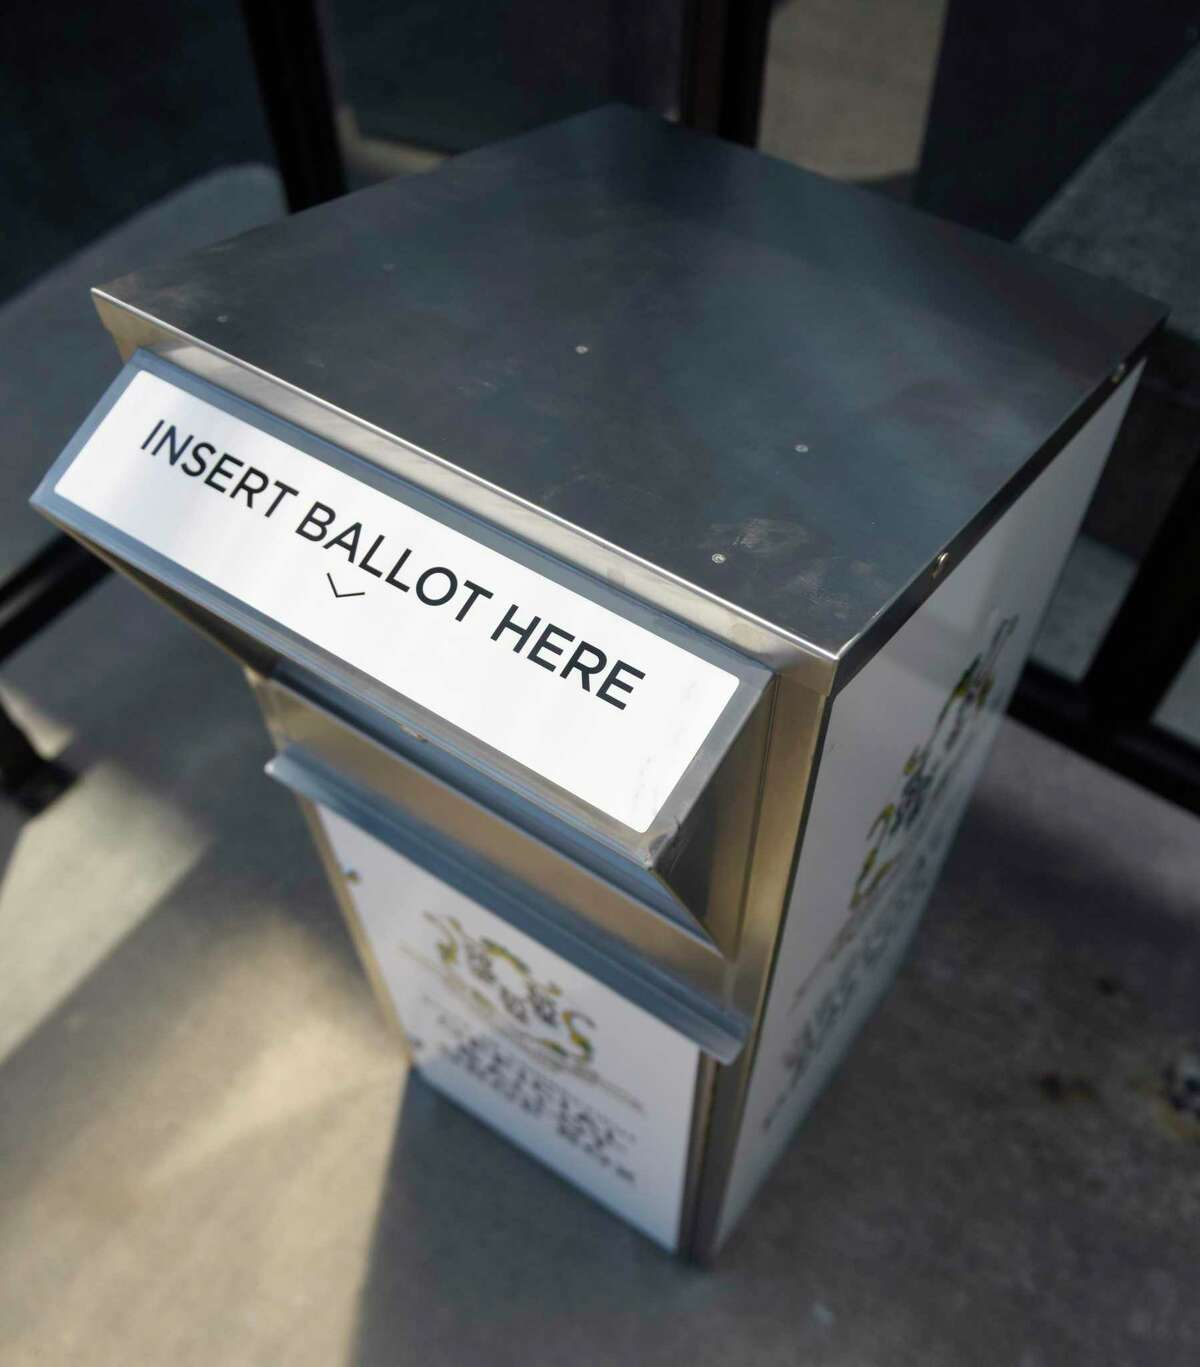 A Connecticut absentee ballot drop box is located outside Town Hall in Greenwich, Conn. Tuesday, July 21, 2020. Secure metal bins have been placed in towns throughout the state for residents to place their absentee ballot applications and absentee ballots for the upcoming primary election on Aug. 11.